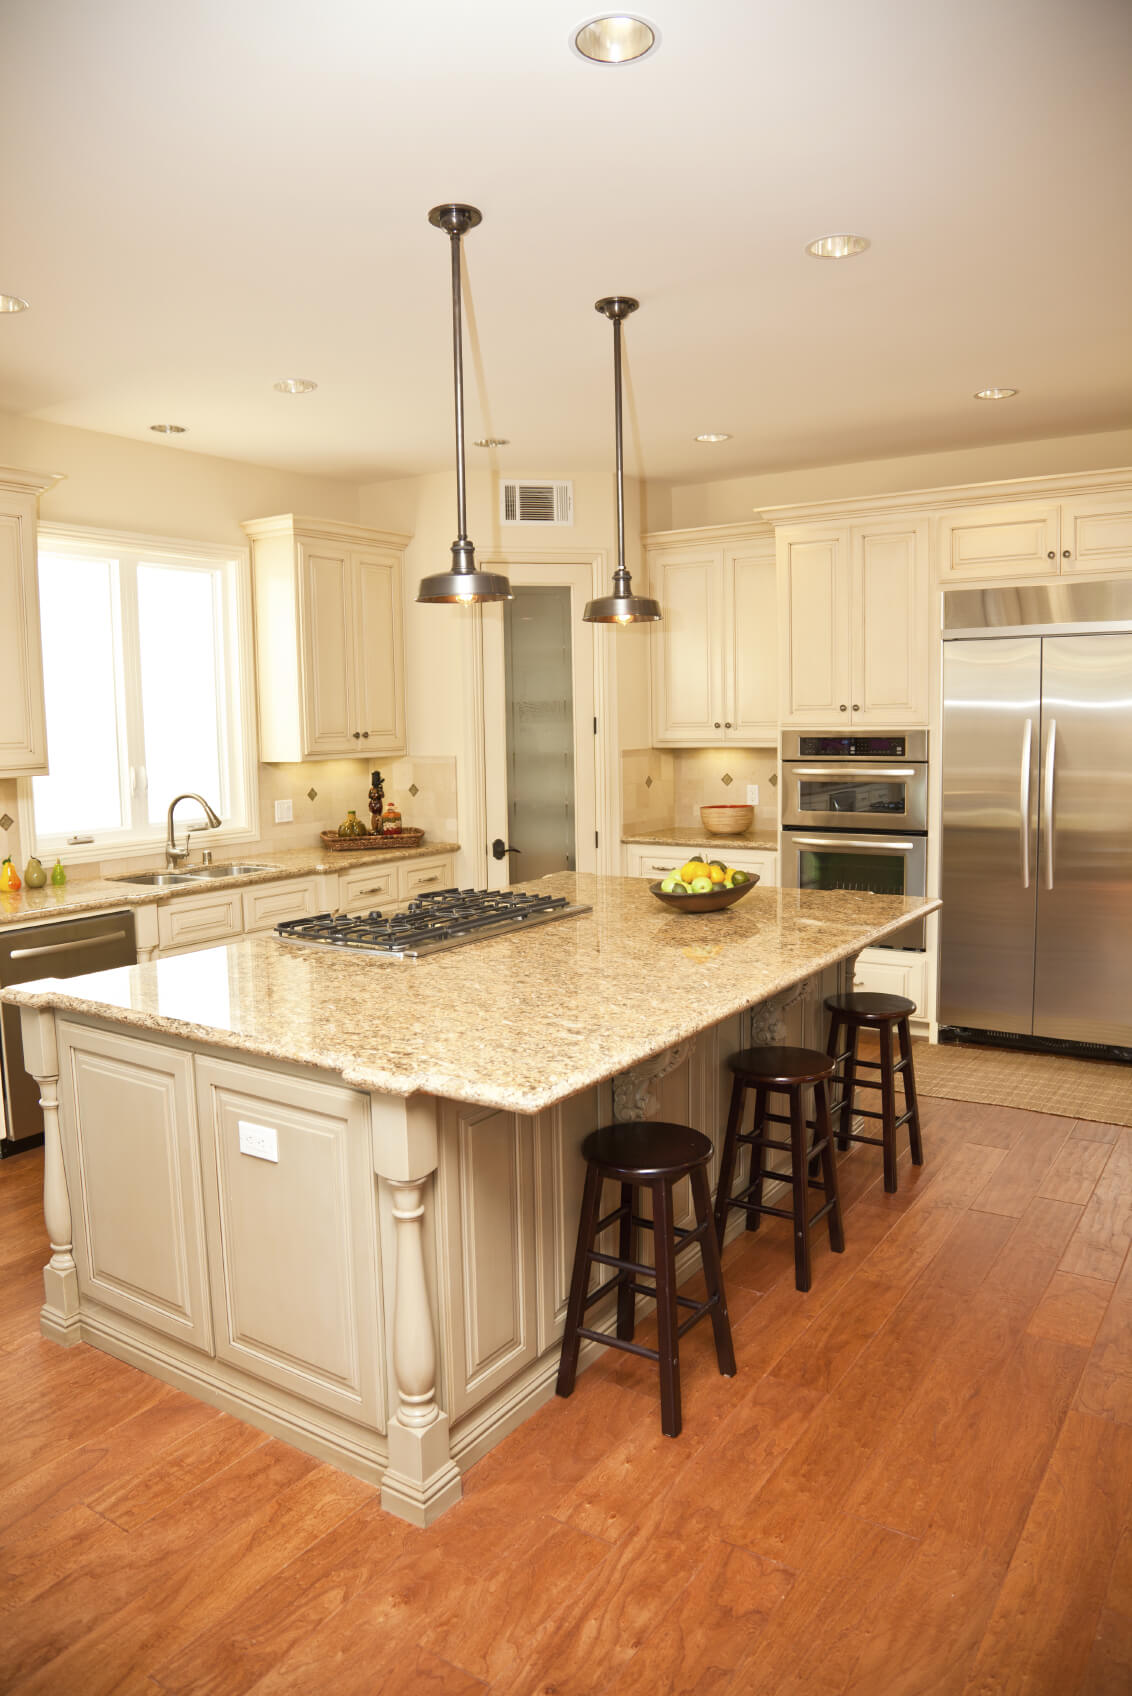 Kitchen Island Countertops : Kitchen island ideas